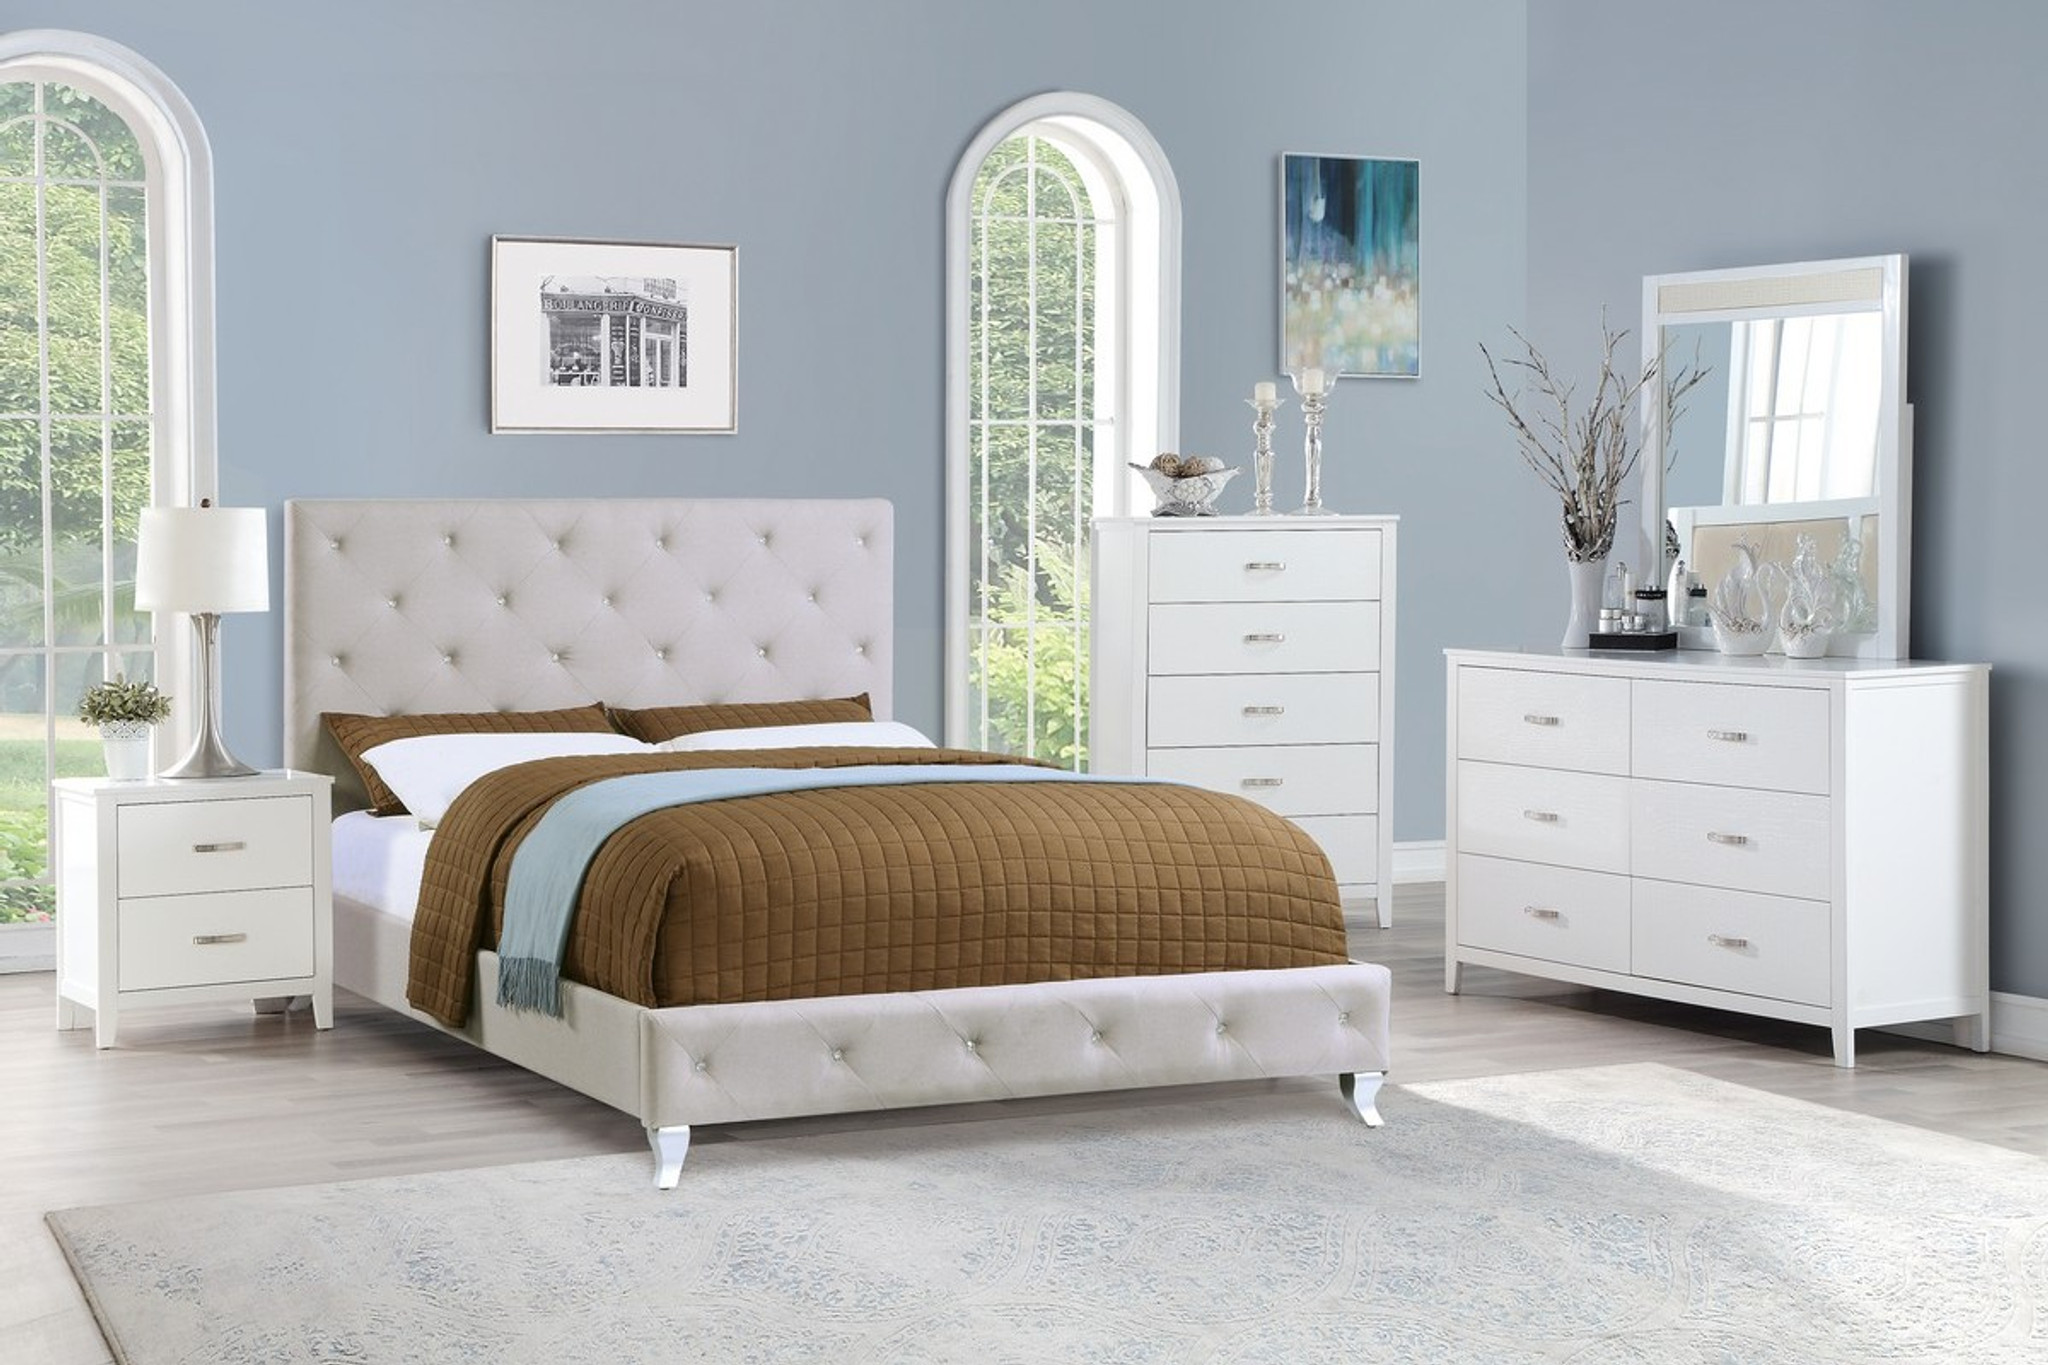 F9419 Nero Full Queen Size Bed In Light Grey By Poundex